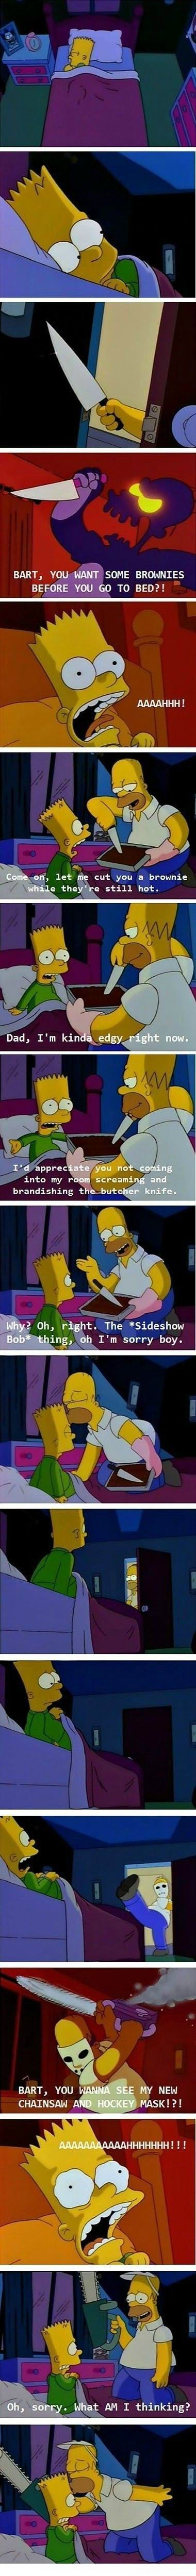 I miss the old Simpsons